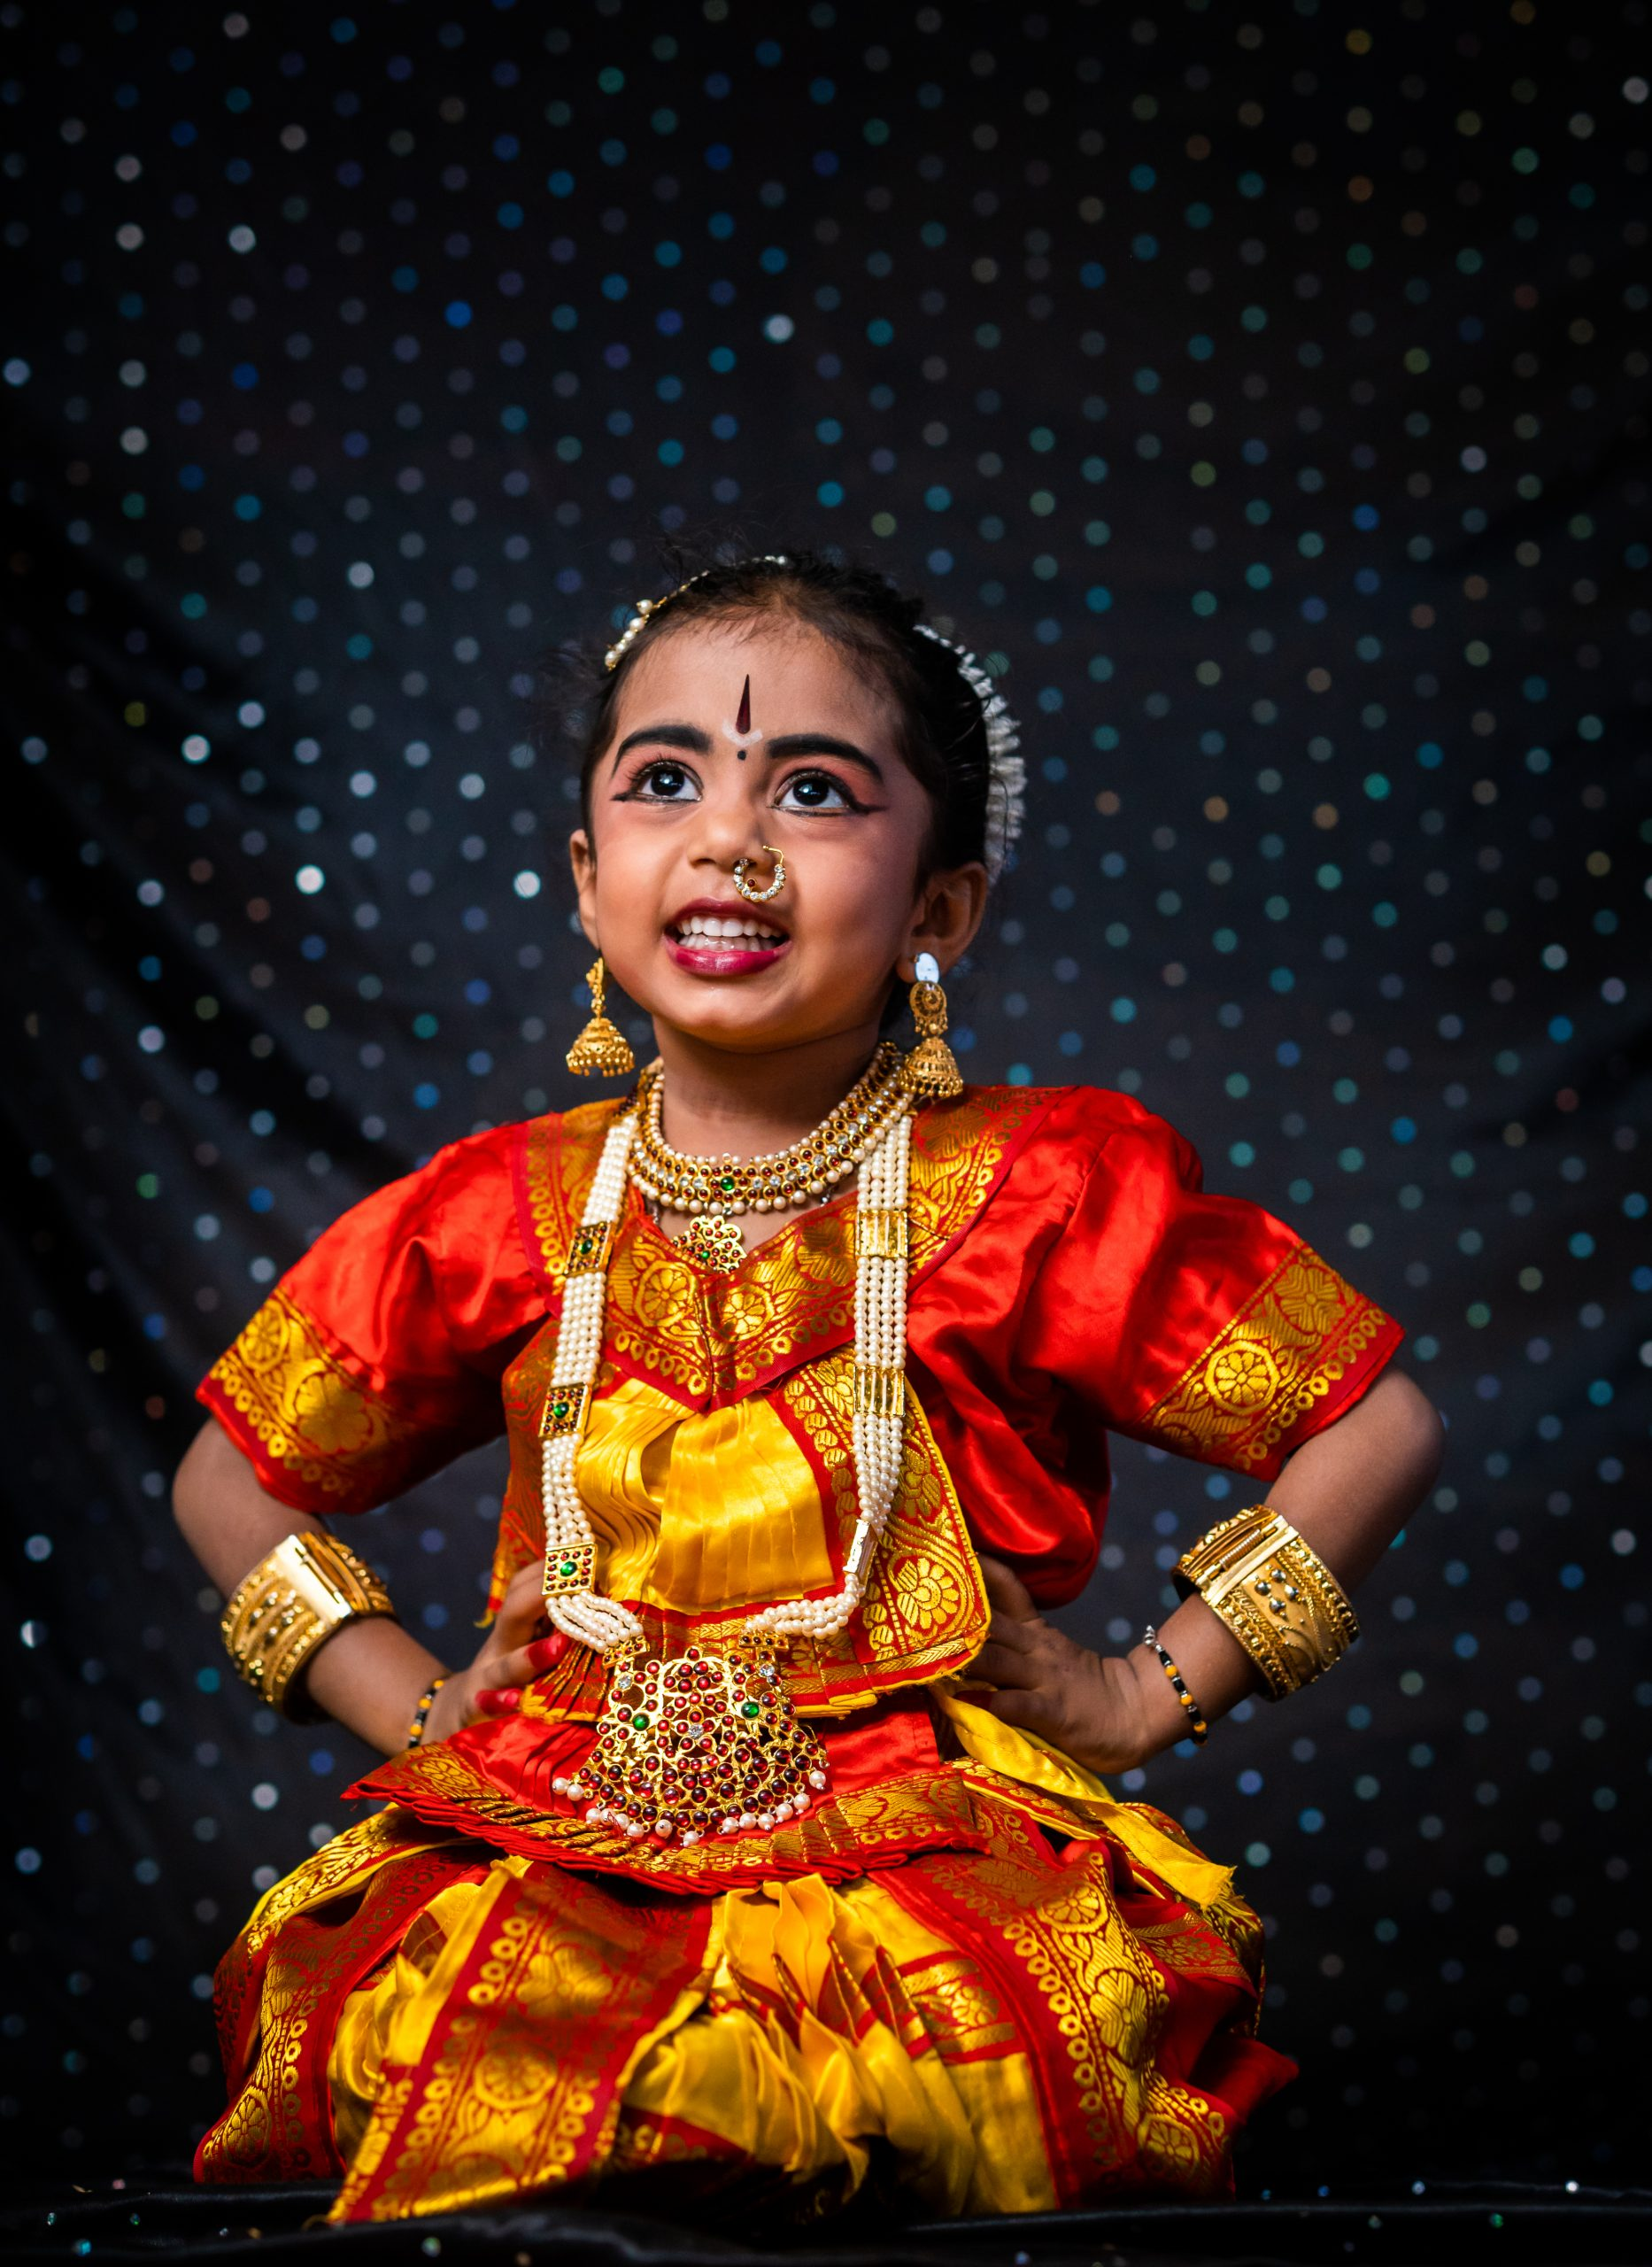 Kid in traditional dress